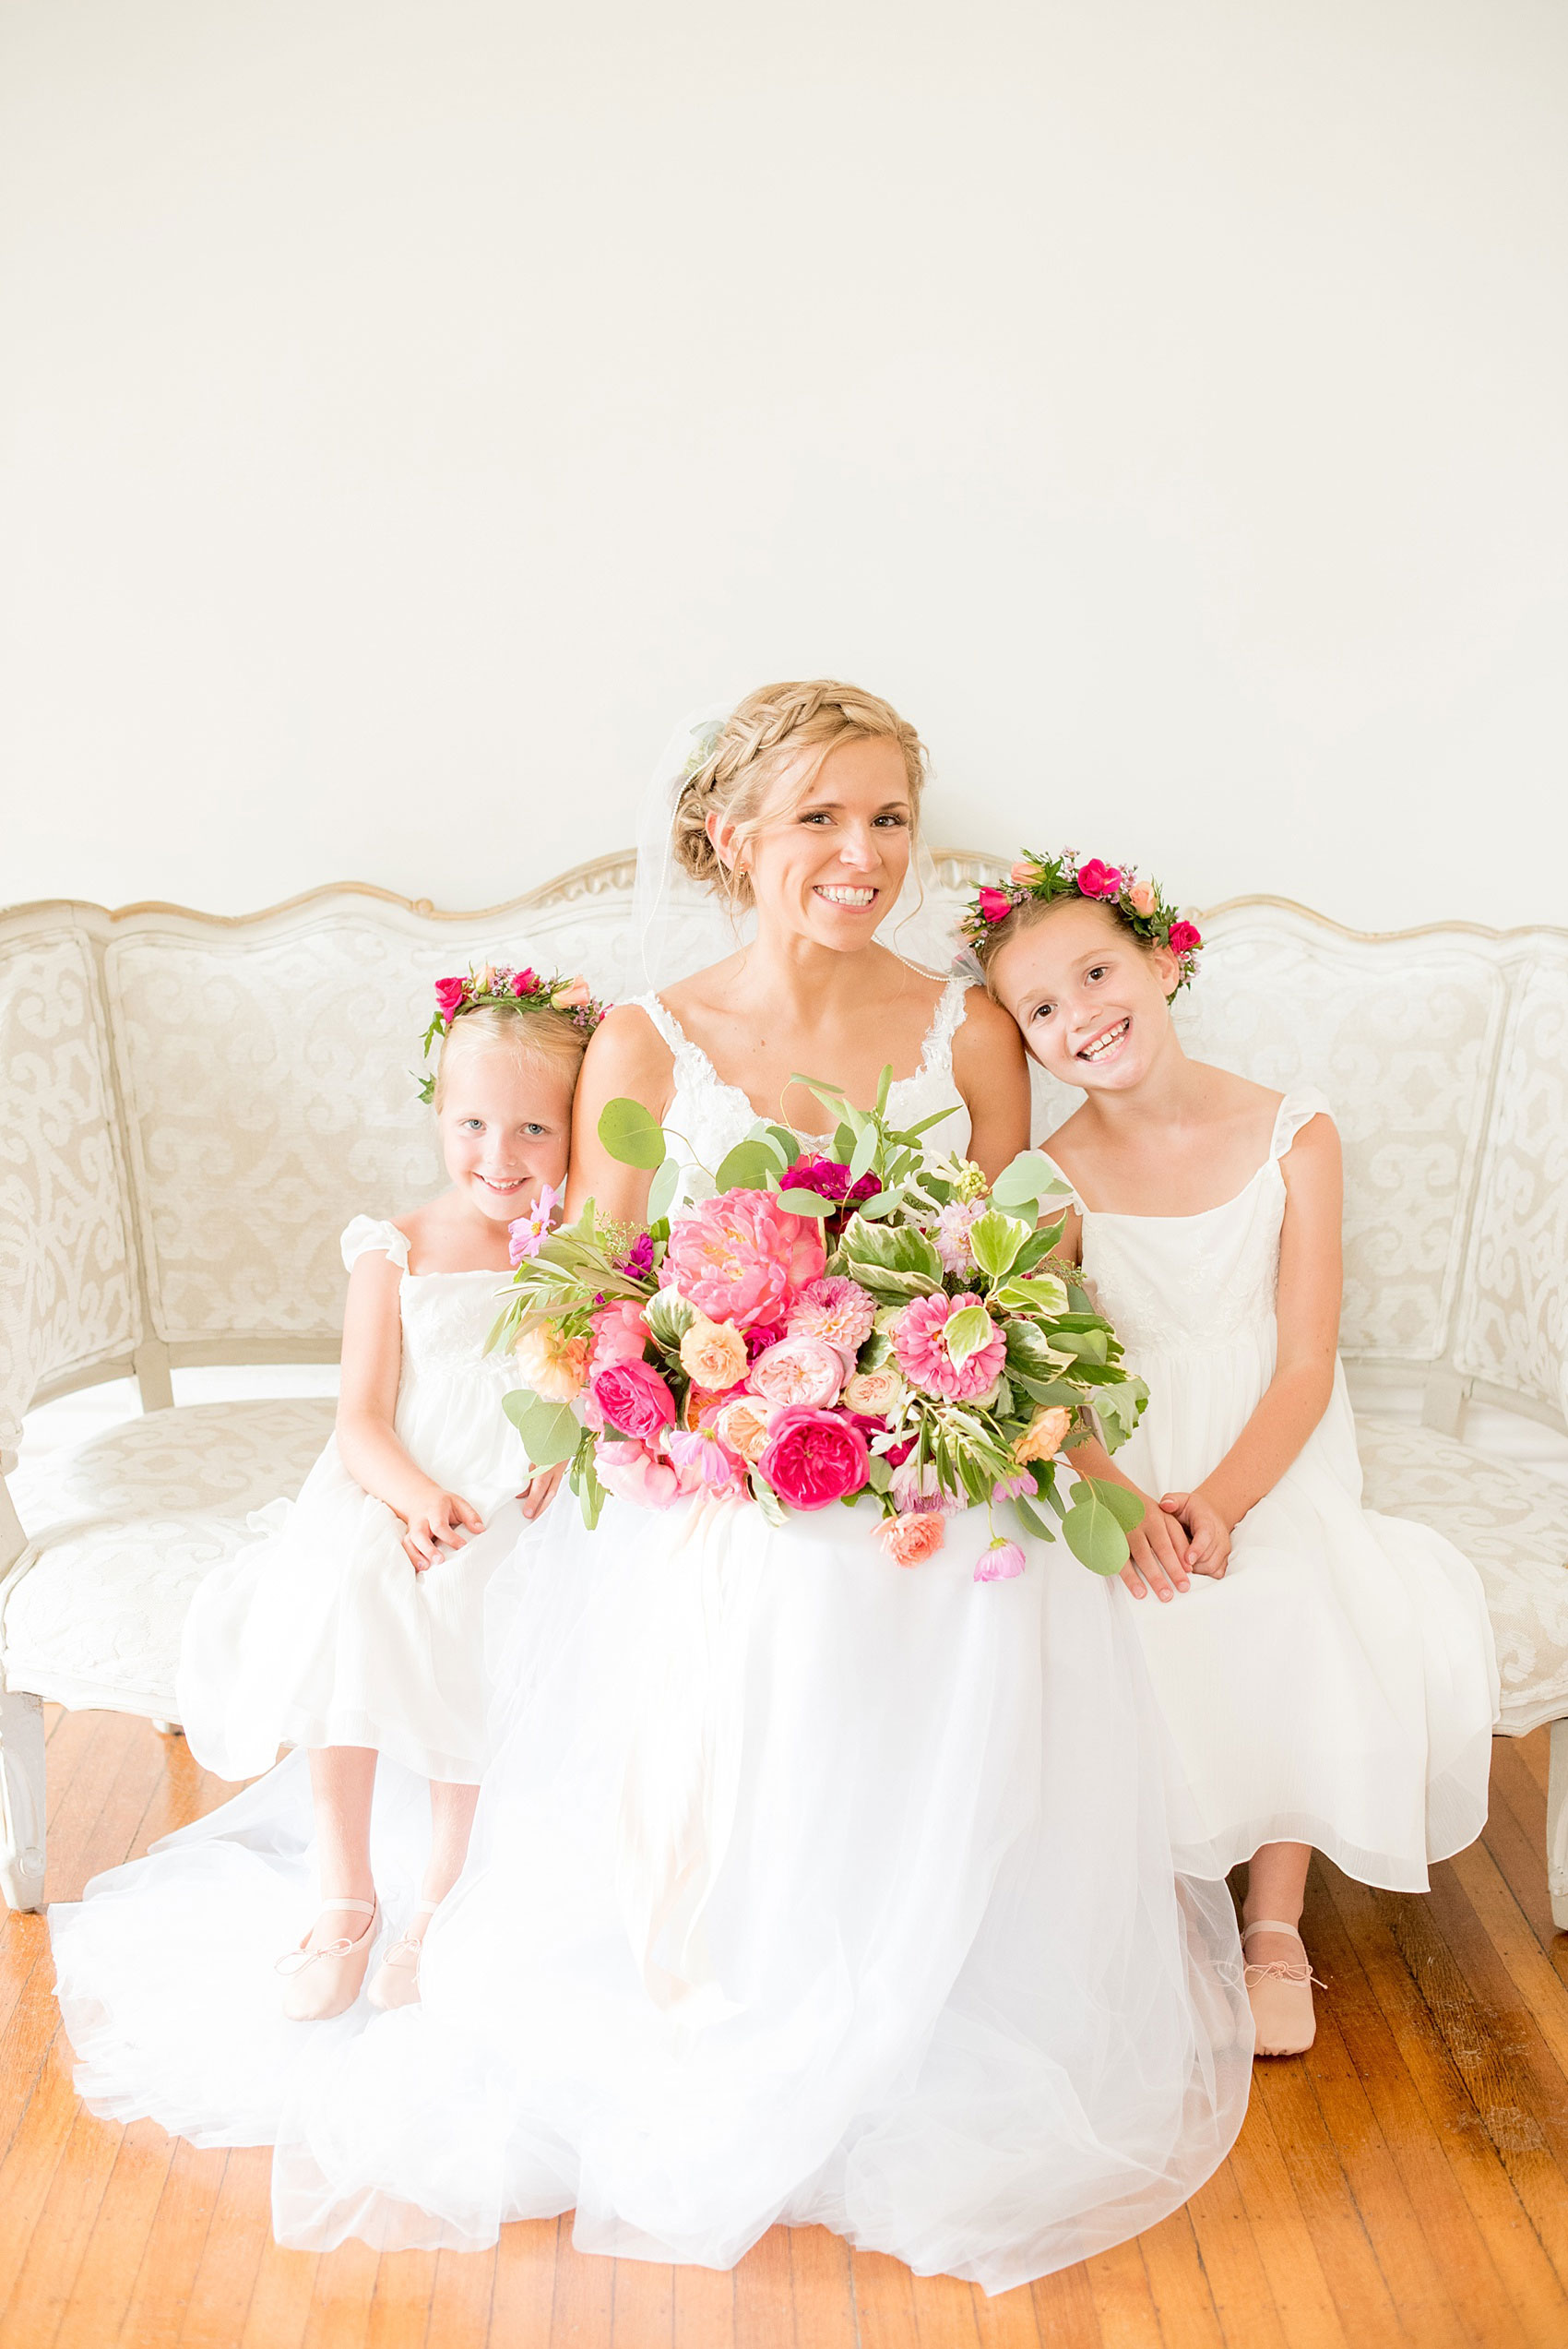 Mikkel Paige Photography wedding photos at The Merrimon-Wynne House in downtown Raleigh. The bride with her two flower girls in colorful floral crowns by Meristem Floral.